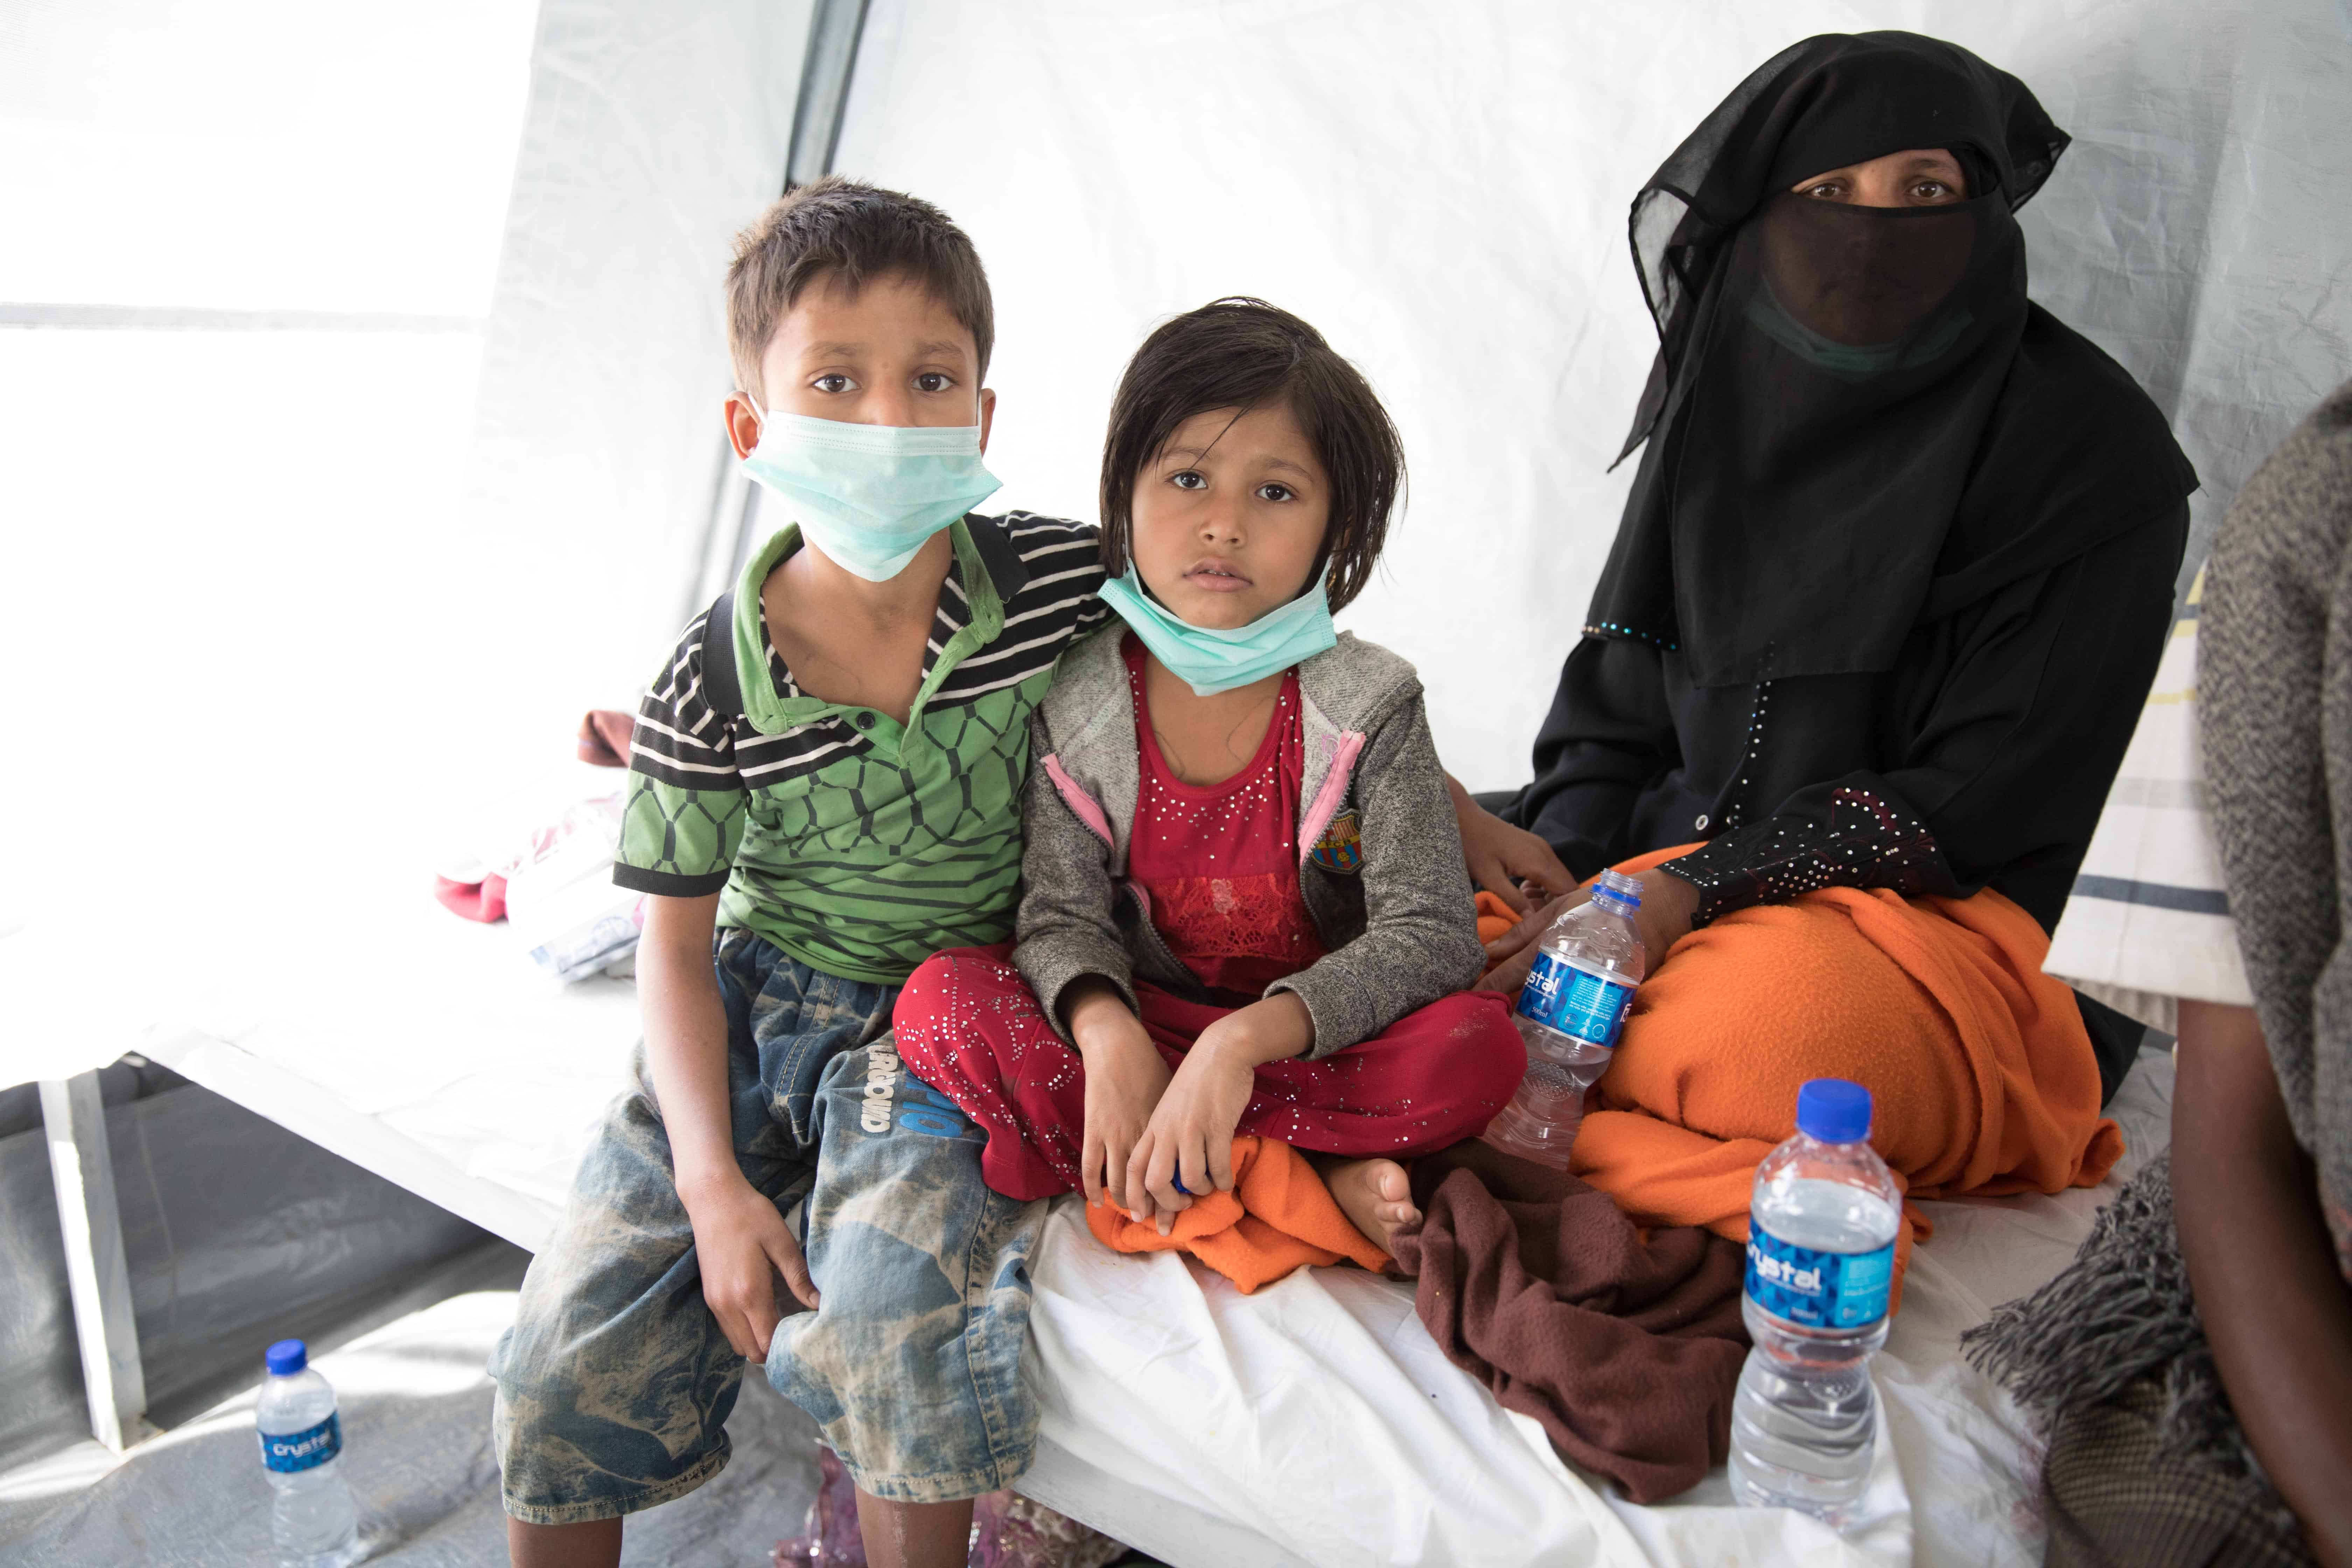 Shamshu (right) with Ziau (left) and Rogina (middle) at the Diphtheria Treatment Center.